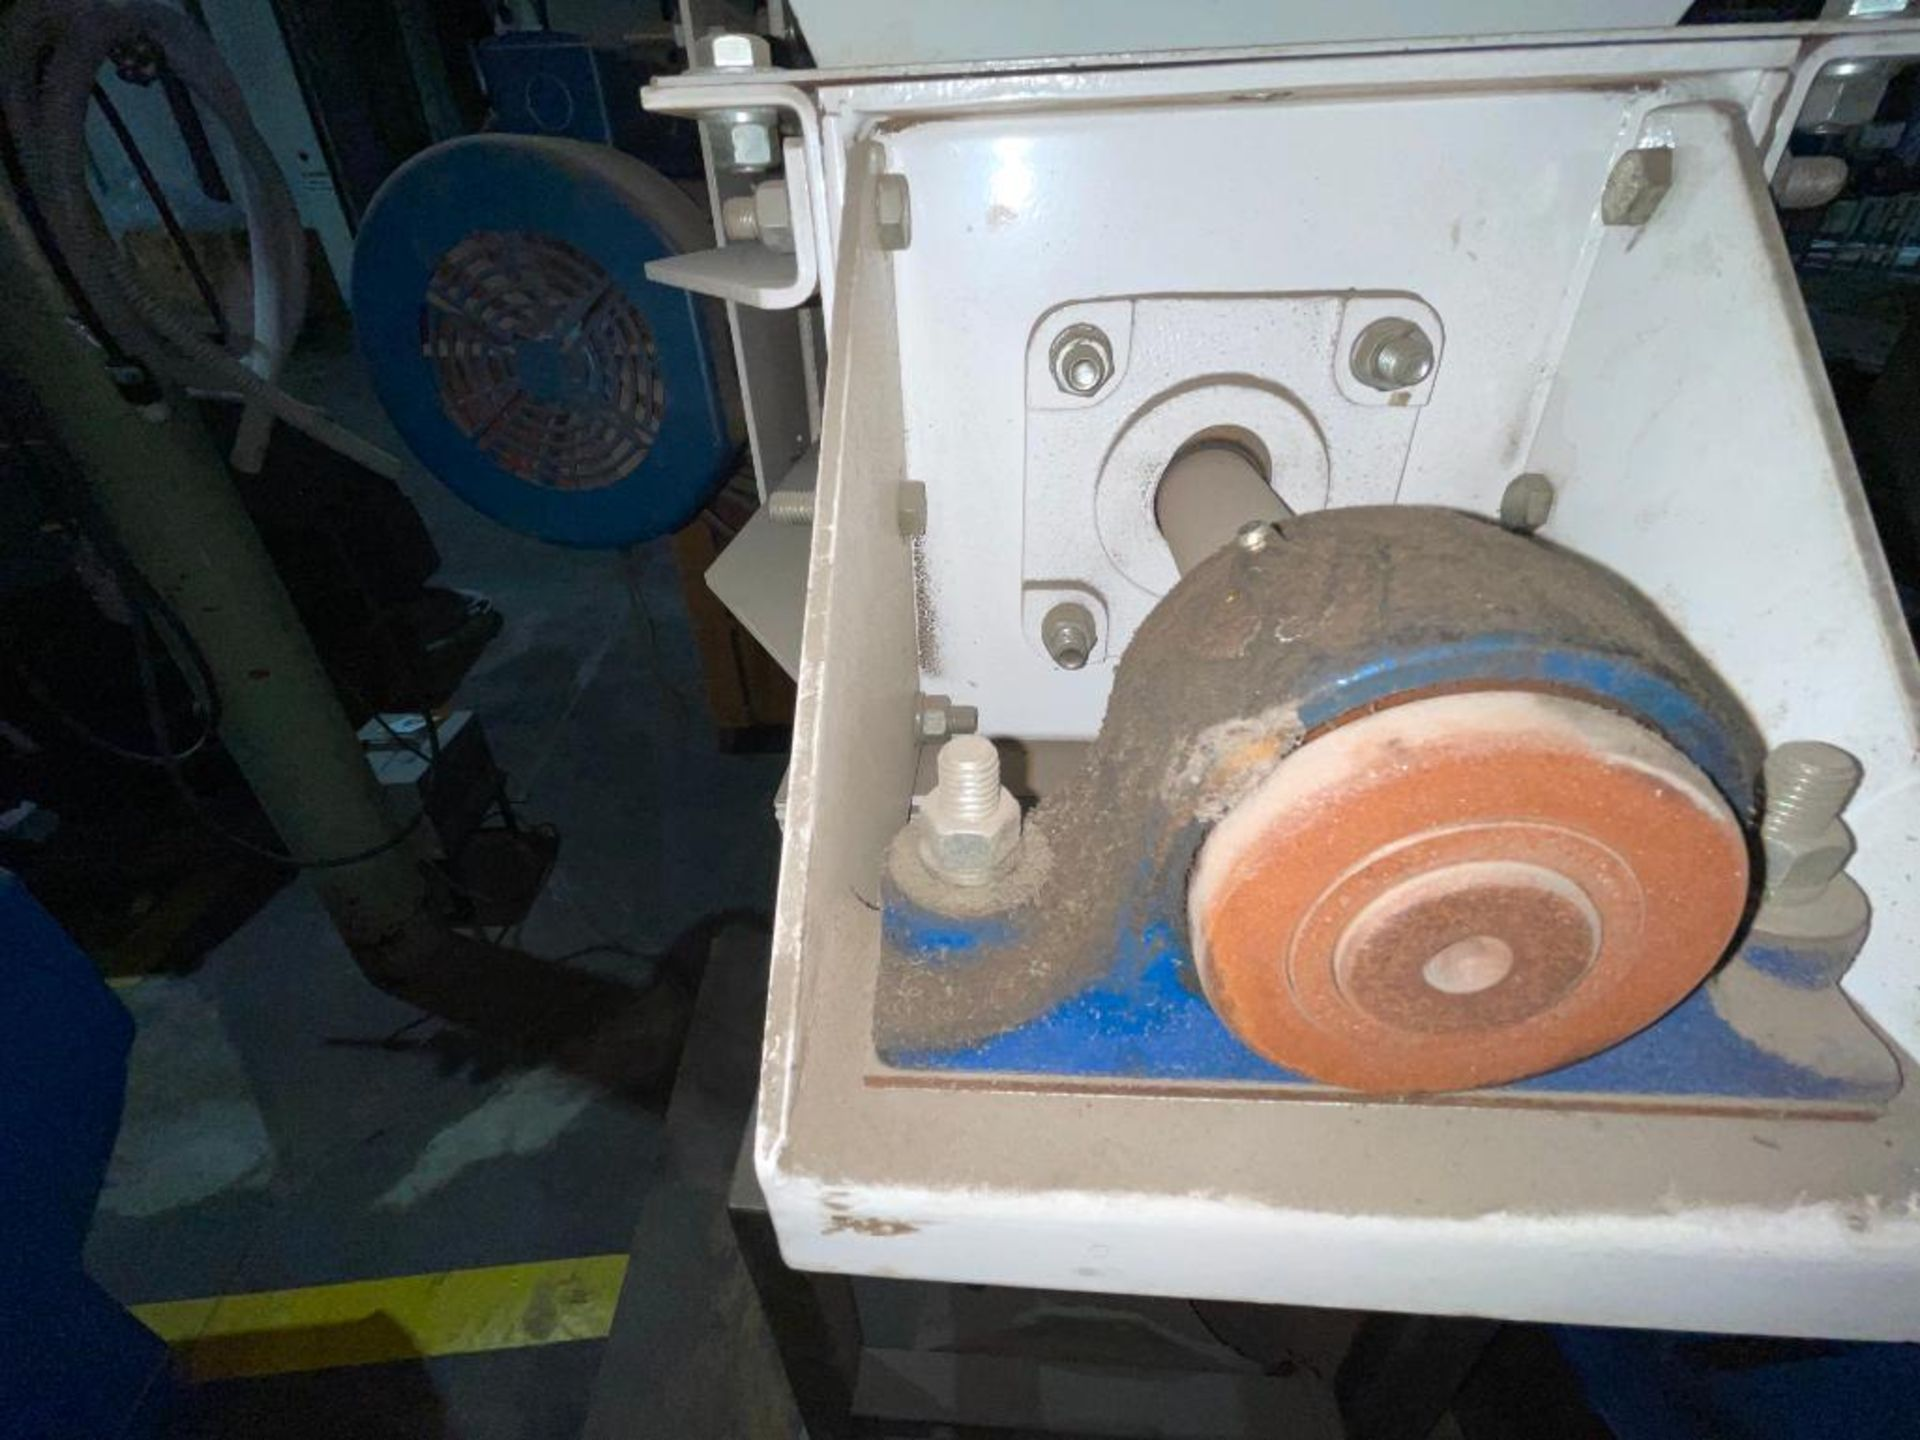 regrind grinder with blower and motor - Image 7 of 13